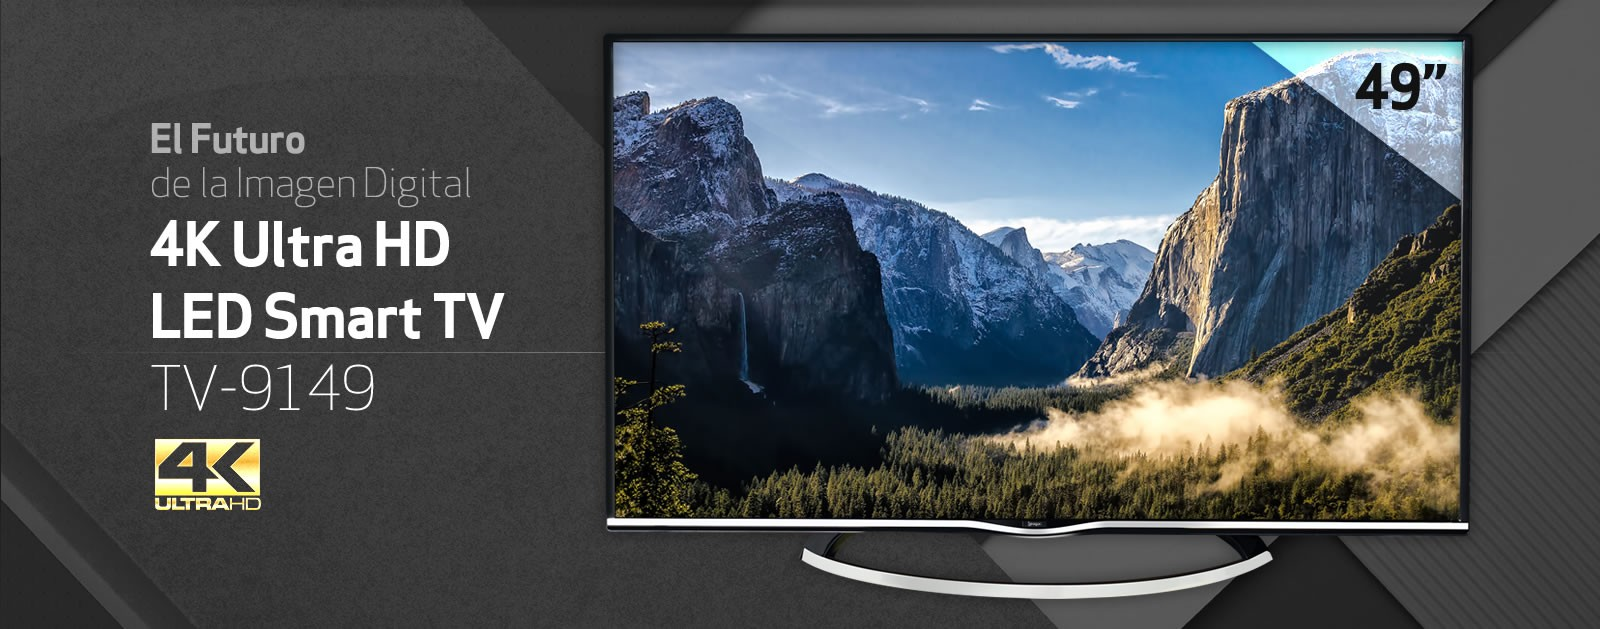 Smart TV 4K Ultra HD LED TV-9149